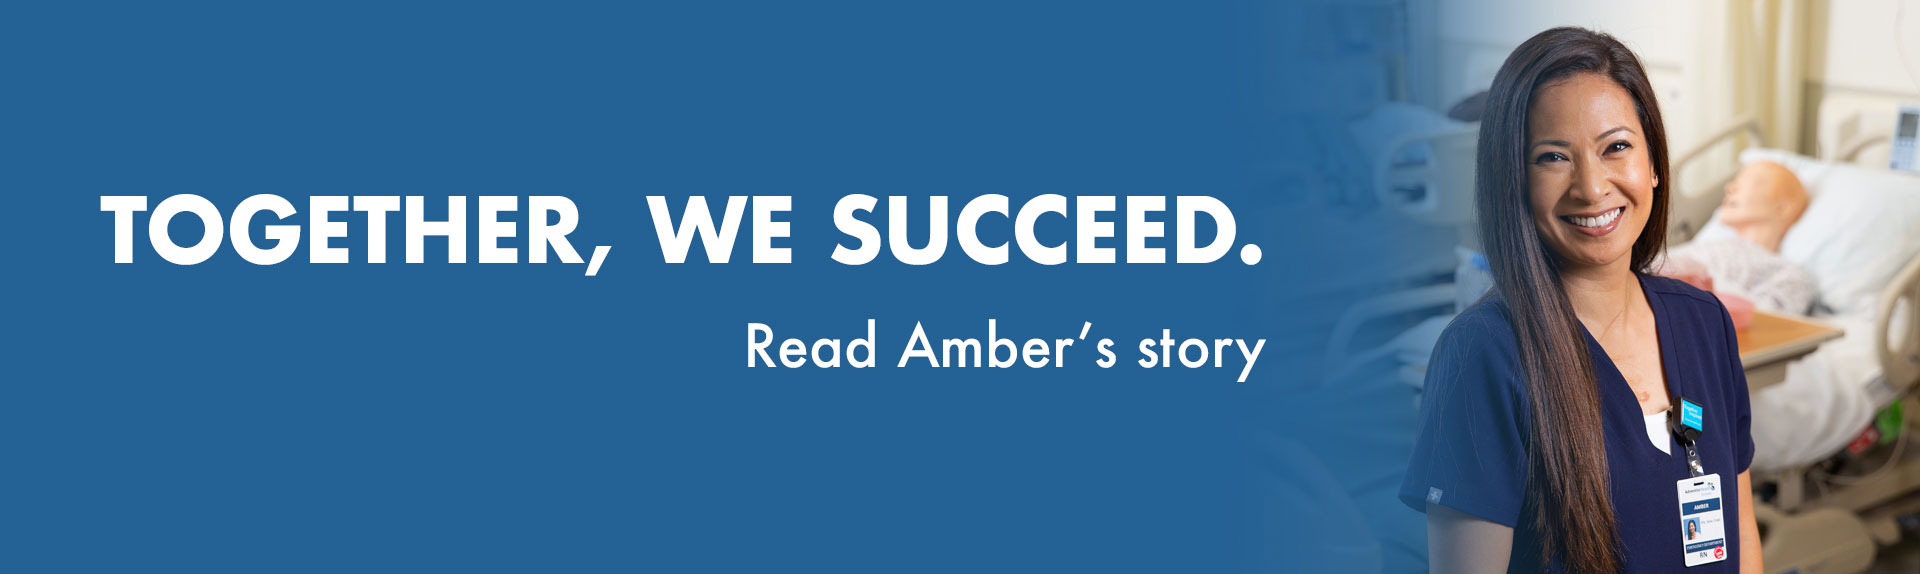 Together, we succeed. Read Amber's story.